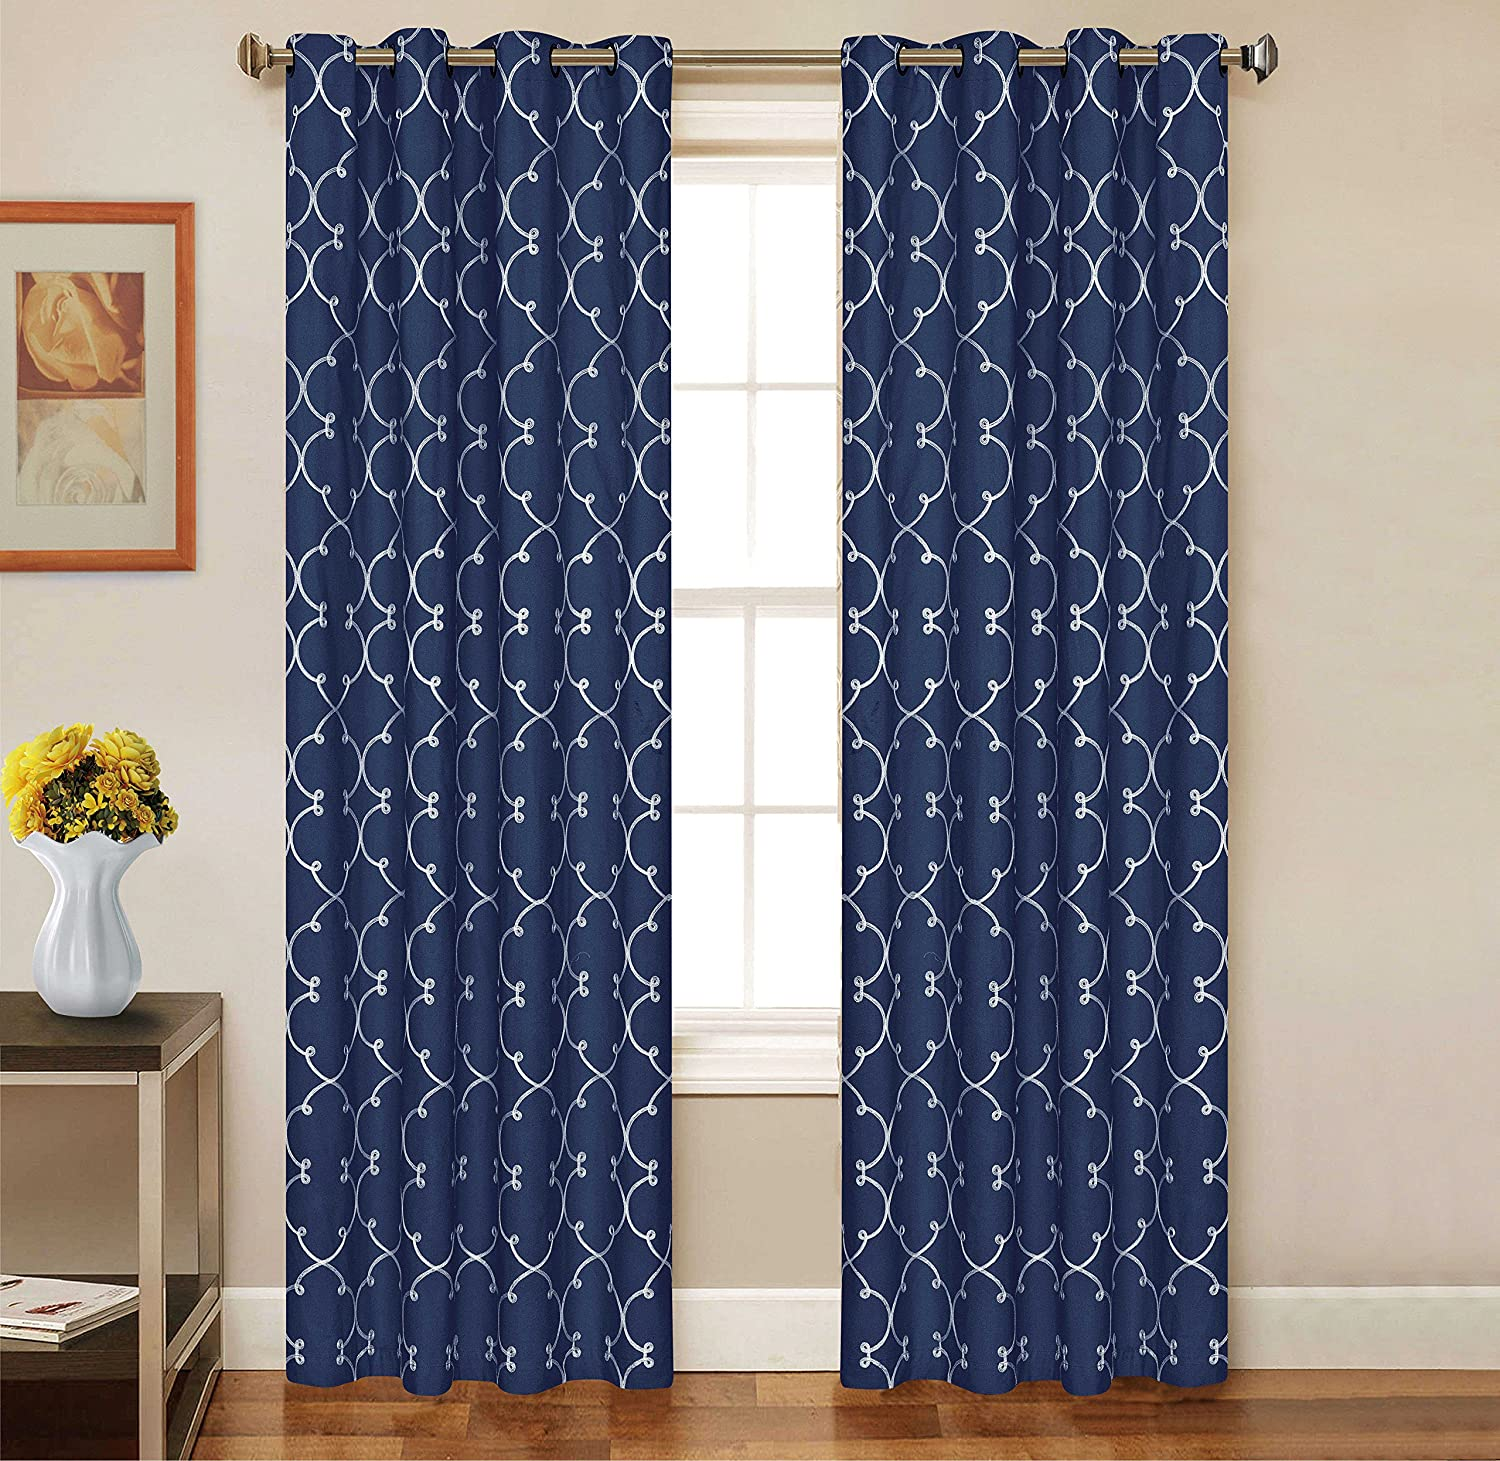 2 Piece Set CARTEL Window Panels Embroidered Grommet Top Decorative Curtains, 54